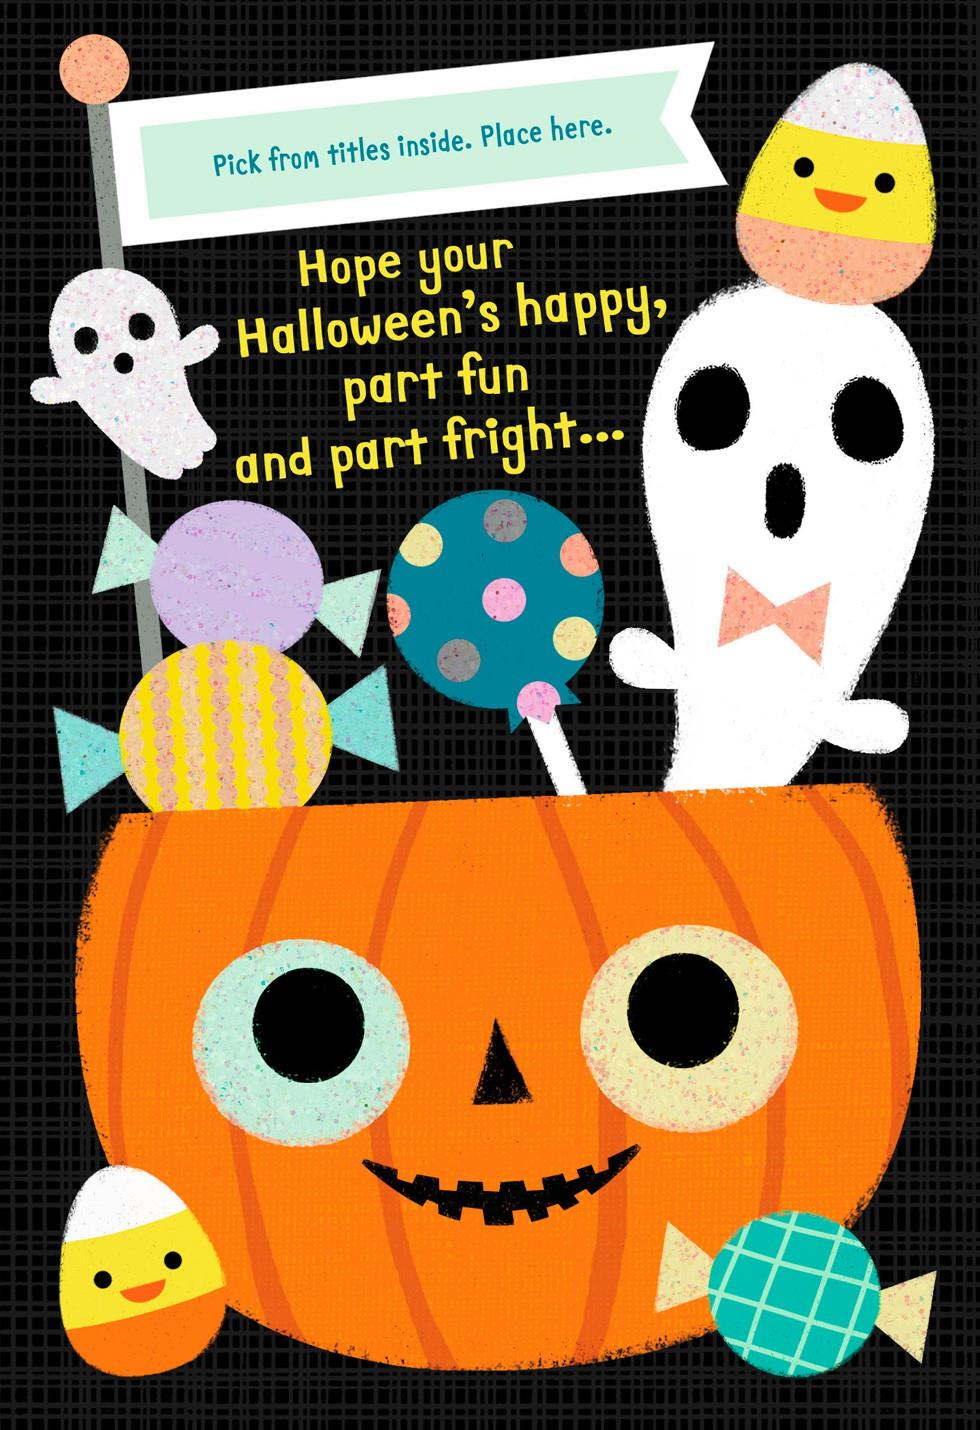 Fun, Frights and Sweet Treats Pick a Title Halloween Card for Him ...